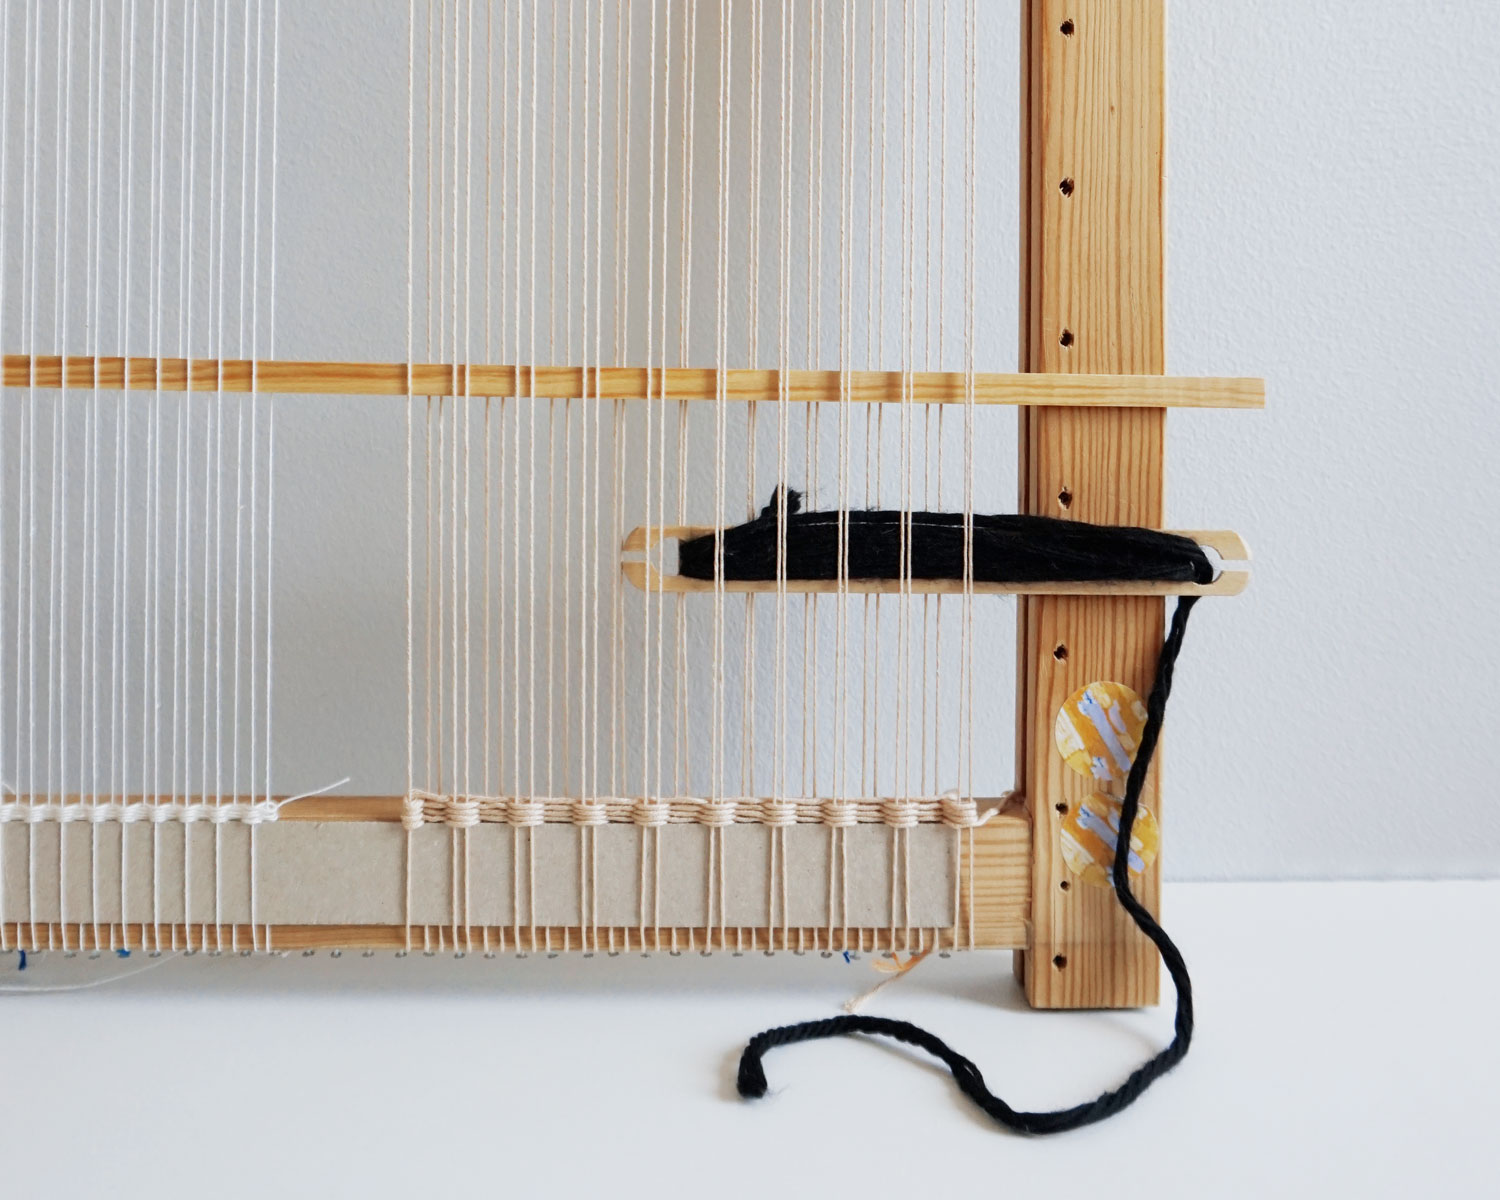 Image of a simple frame weaving loom with a weaving shuttle